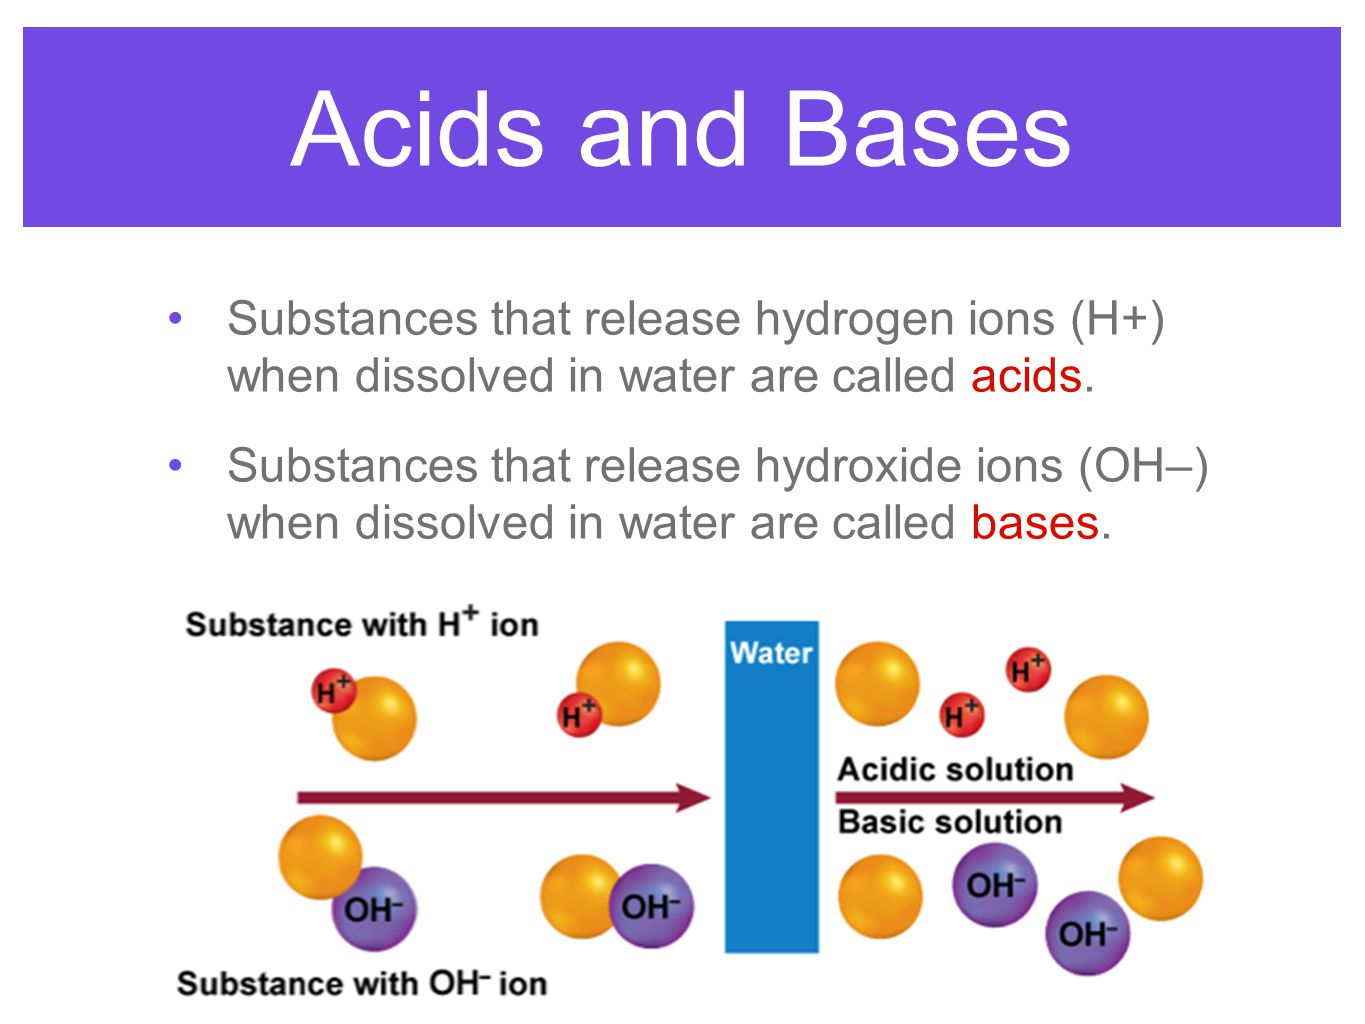 Acids and Bases Substances that release hydrogen ions (H+) when dissolved in water are called acids.